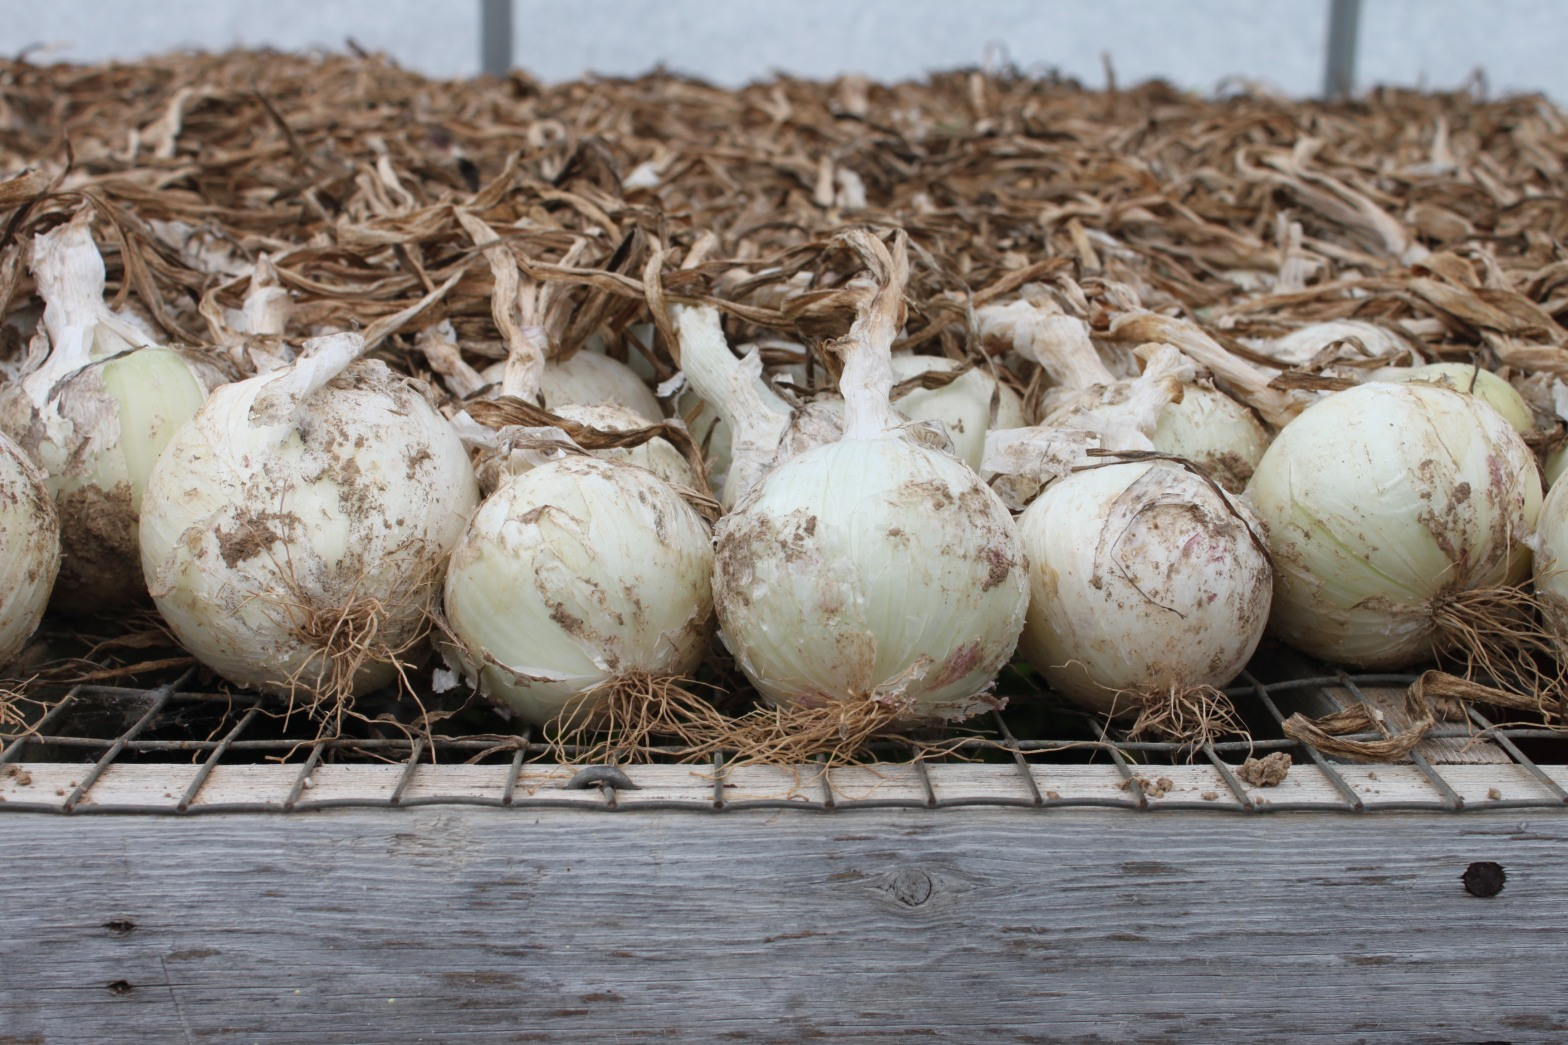 White Onions Curing in the Greenhouse